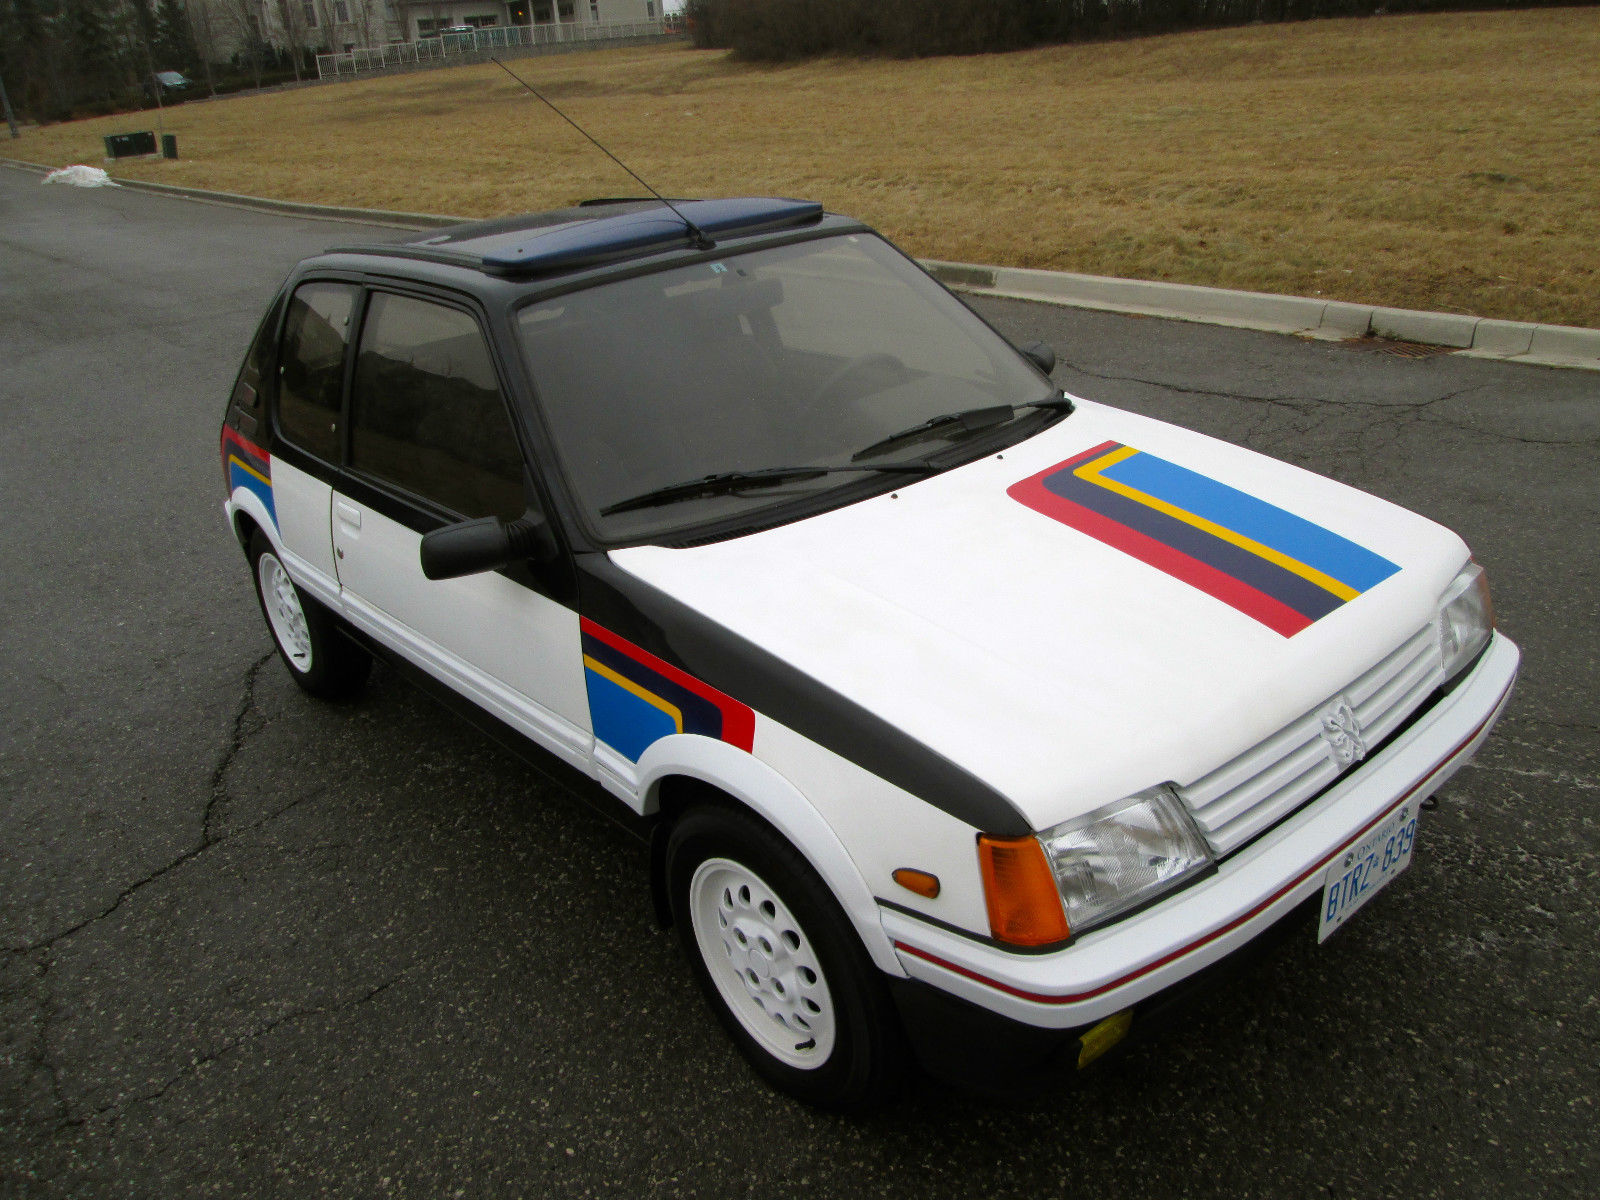 88 peugeot 205 gti 1 9 rally stripes 33k orig miles timecapsule norust usa legal for sale in. Black Bedroom Furniture Sets. Home Design Ideas